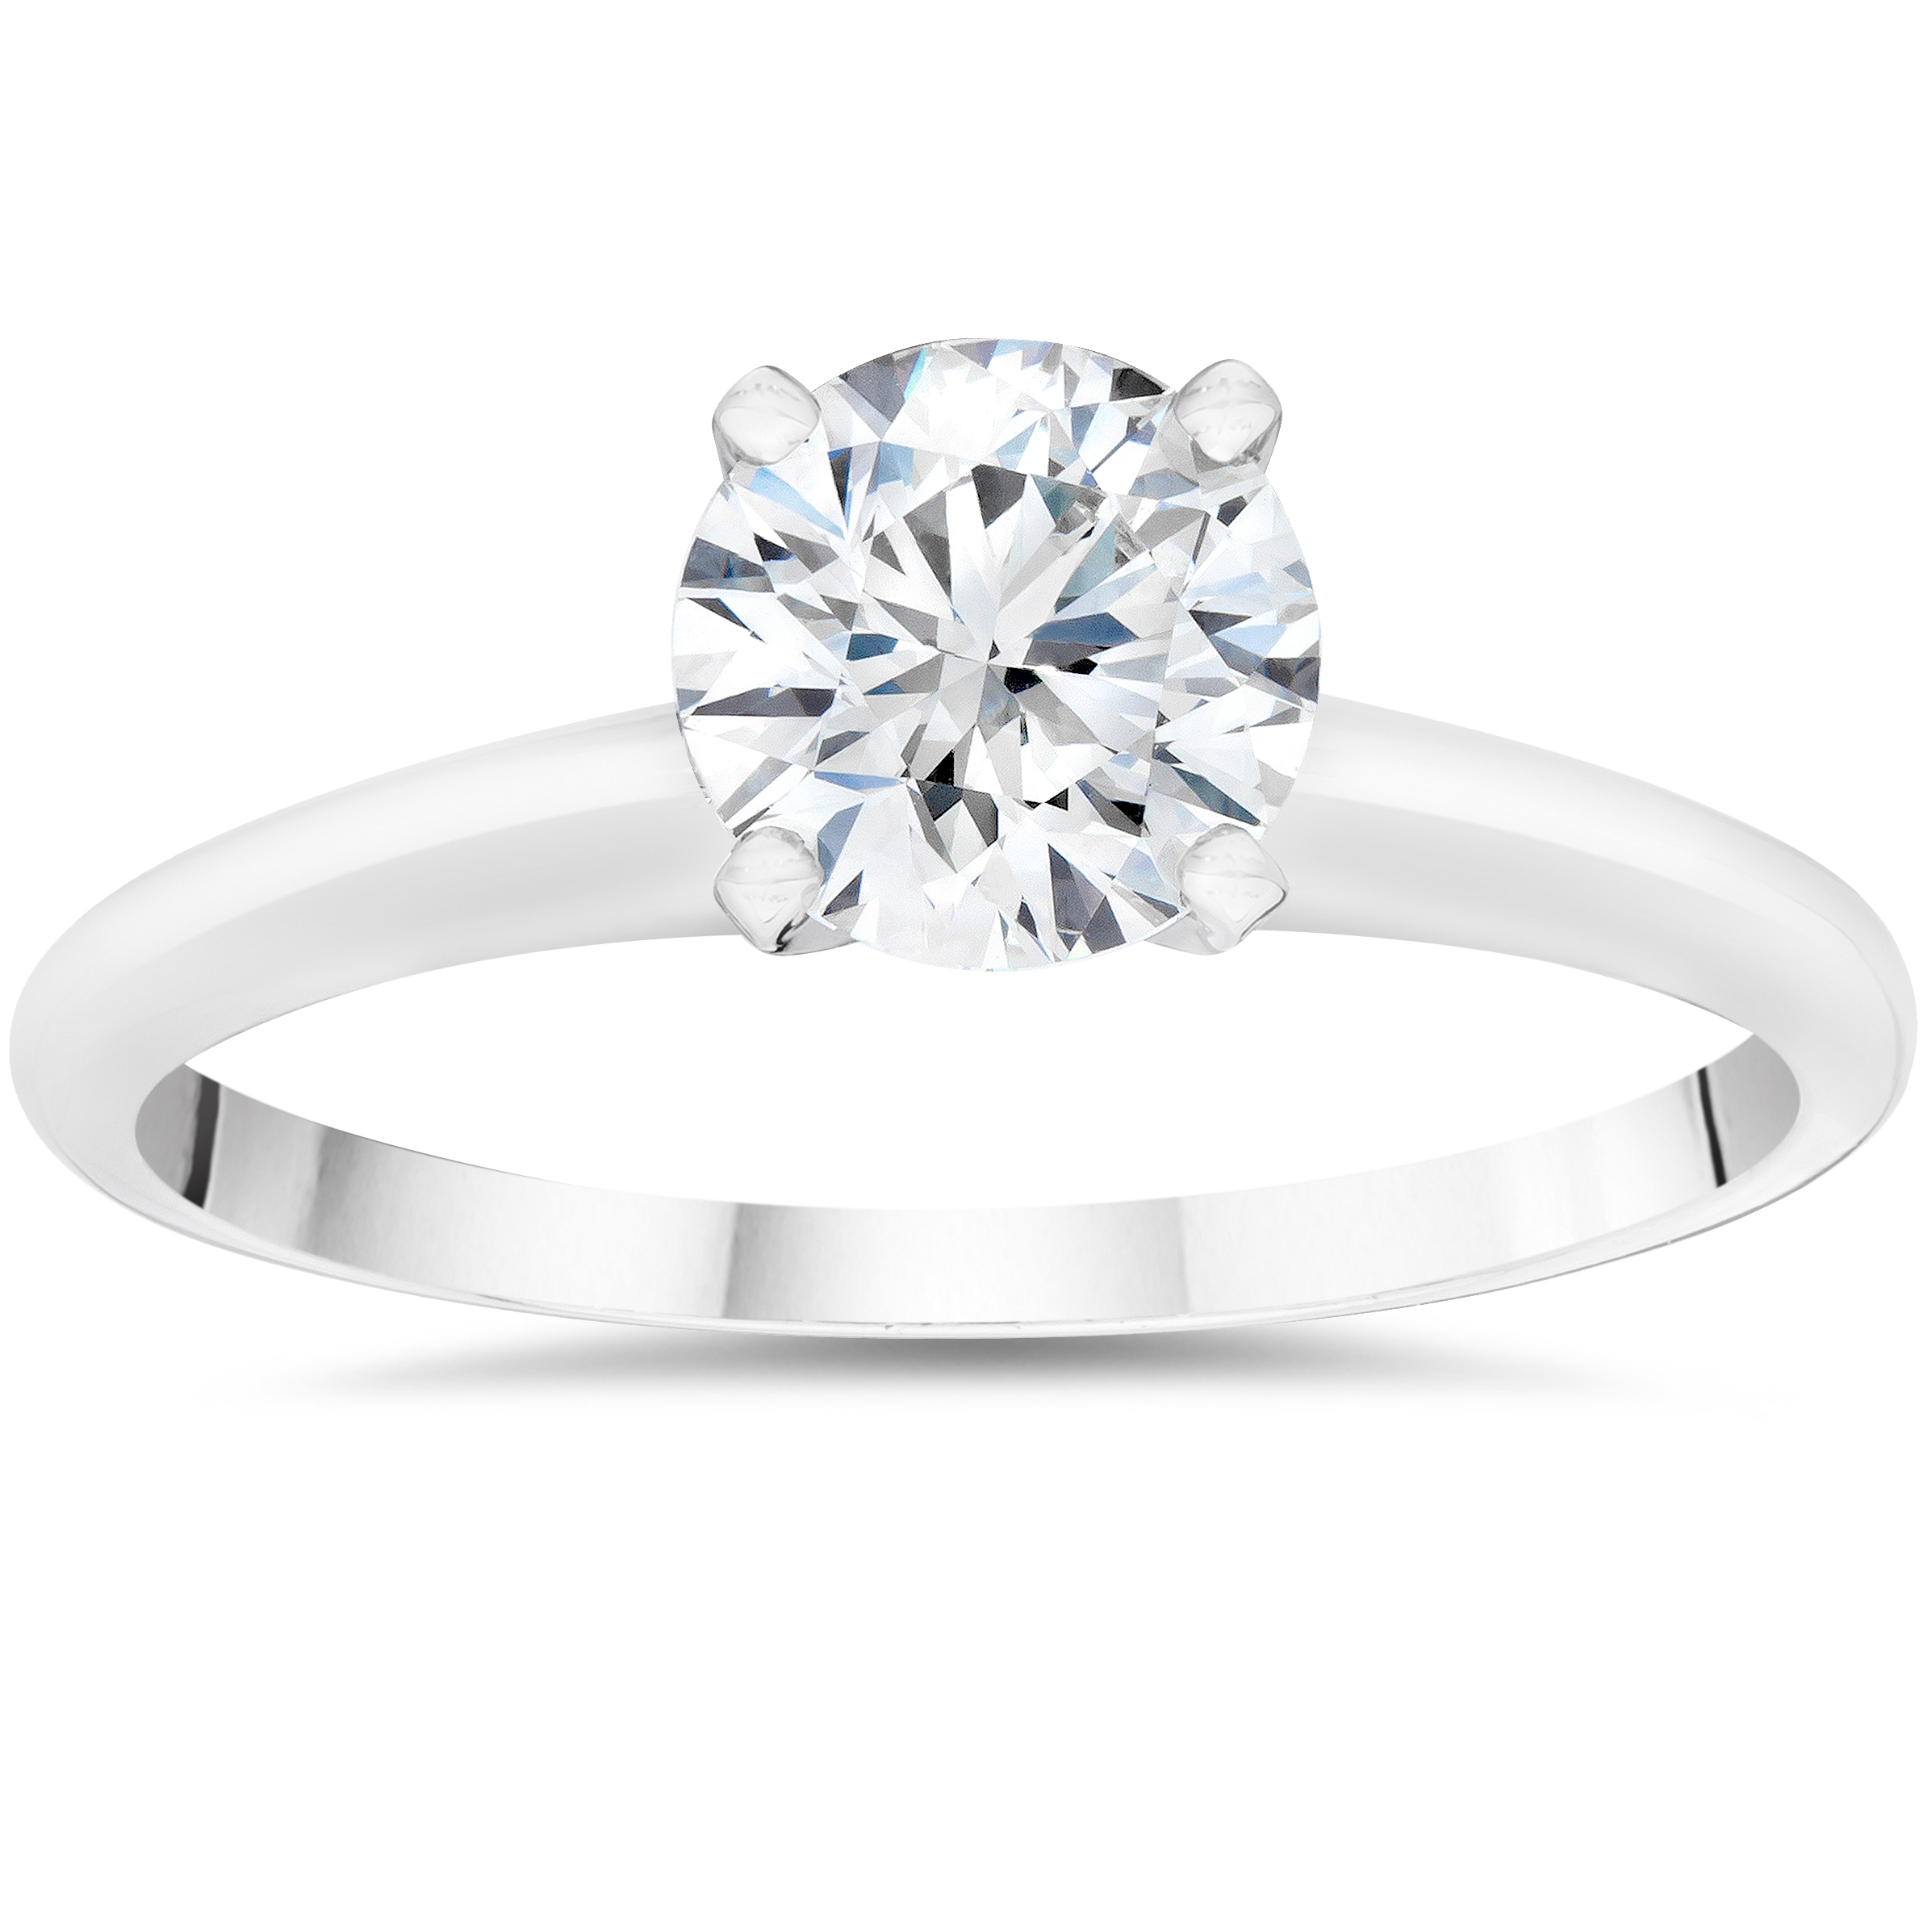 5/8ct Solitaire Round Diamond Engagement Ring 14K White Gold